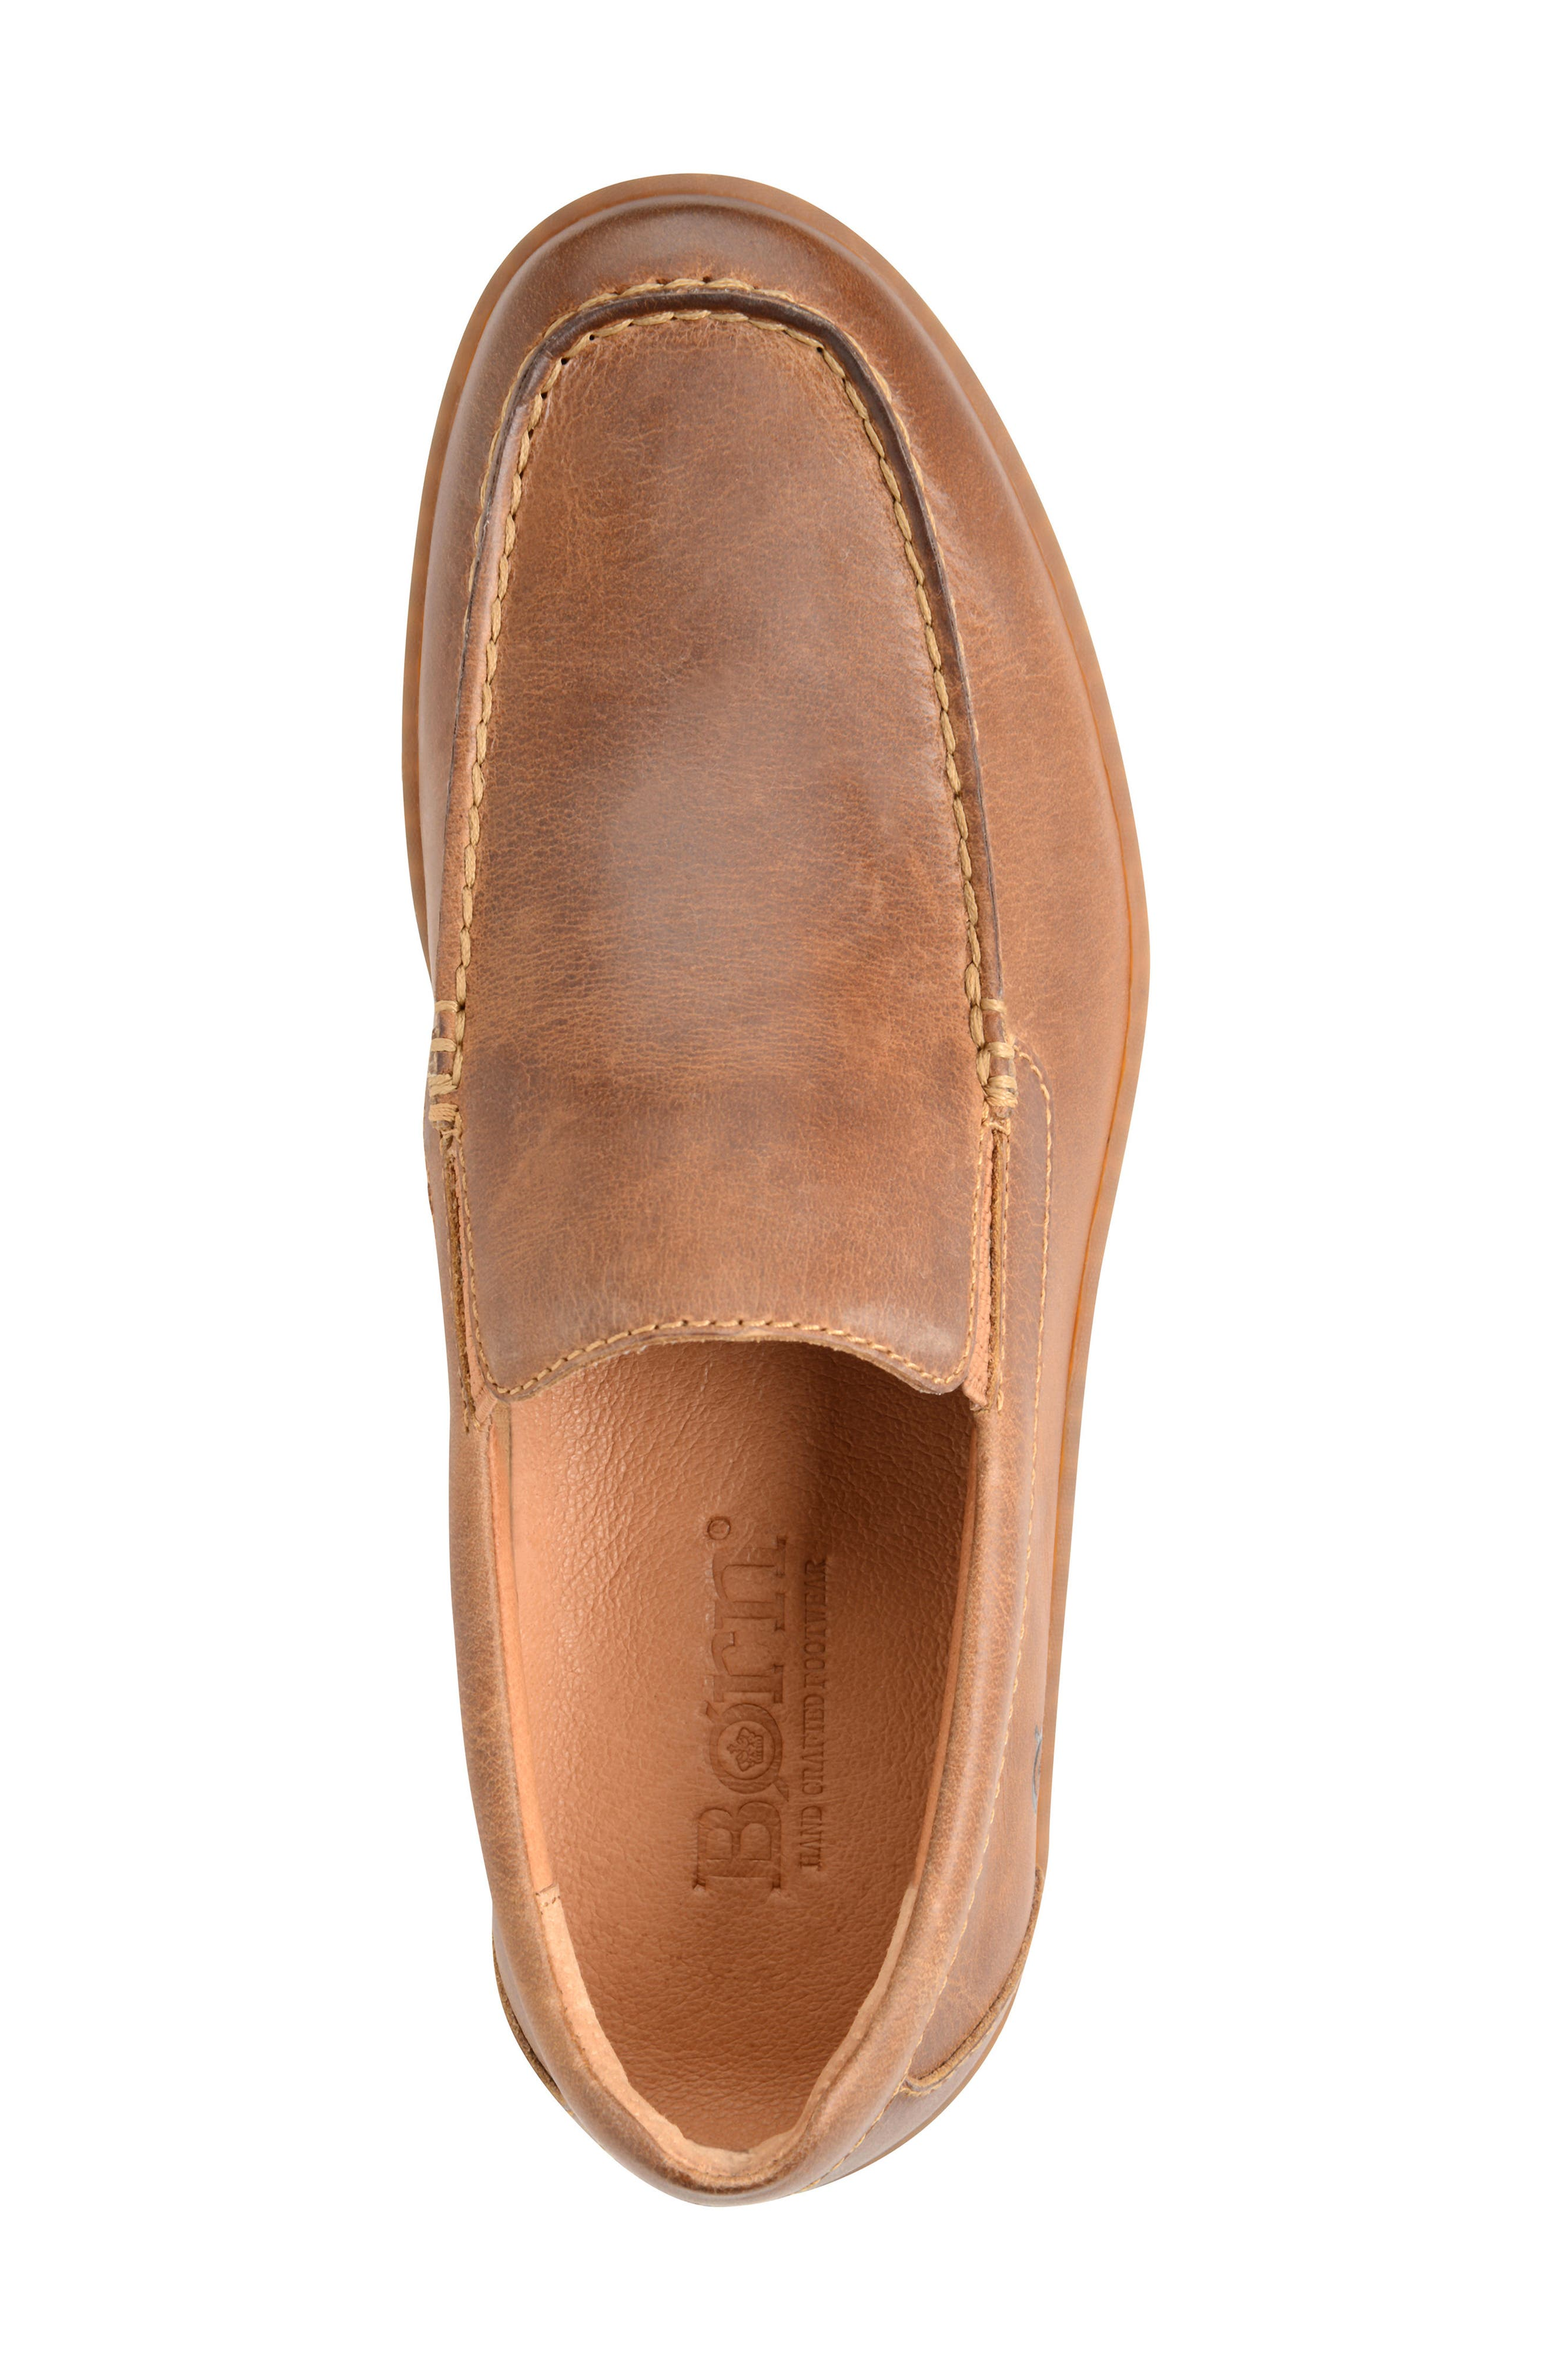 Brompton Loafer,                             Alternate thumbnail 3, color,                             NATURAL